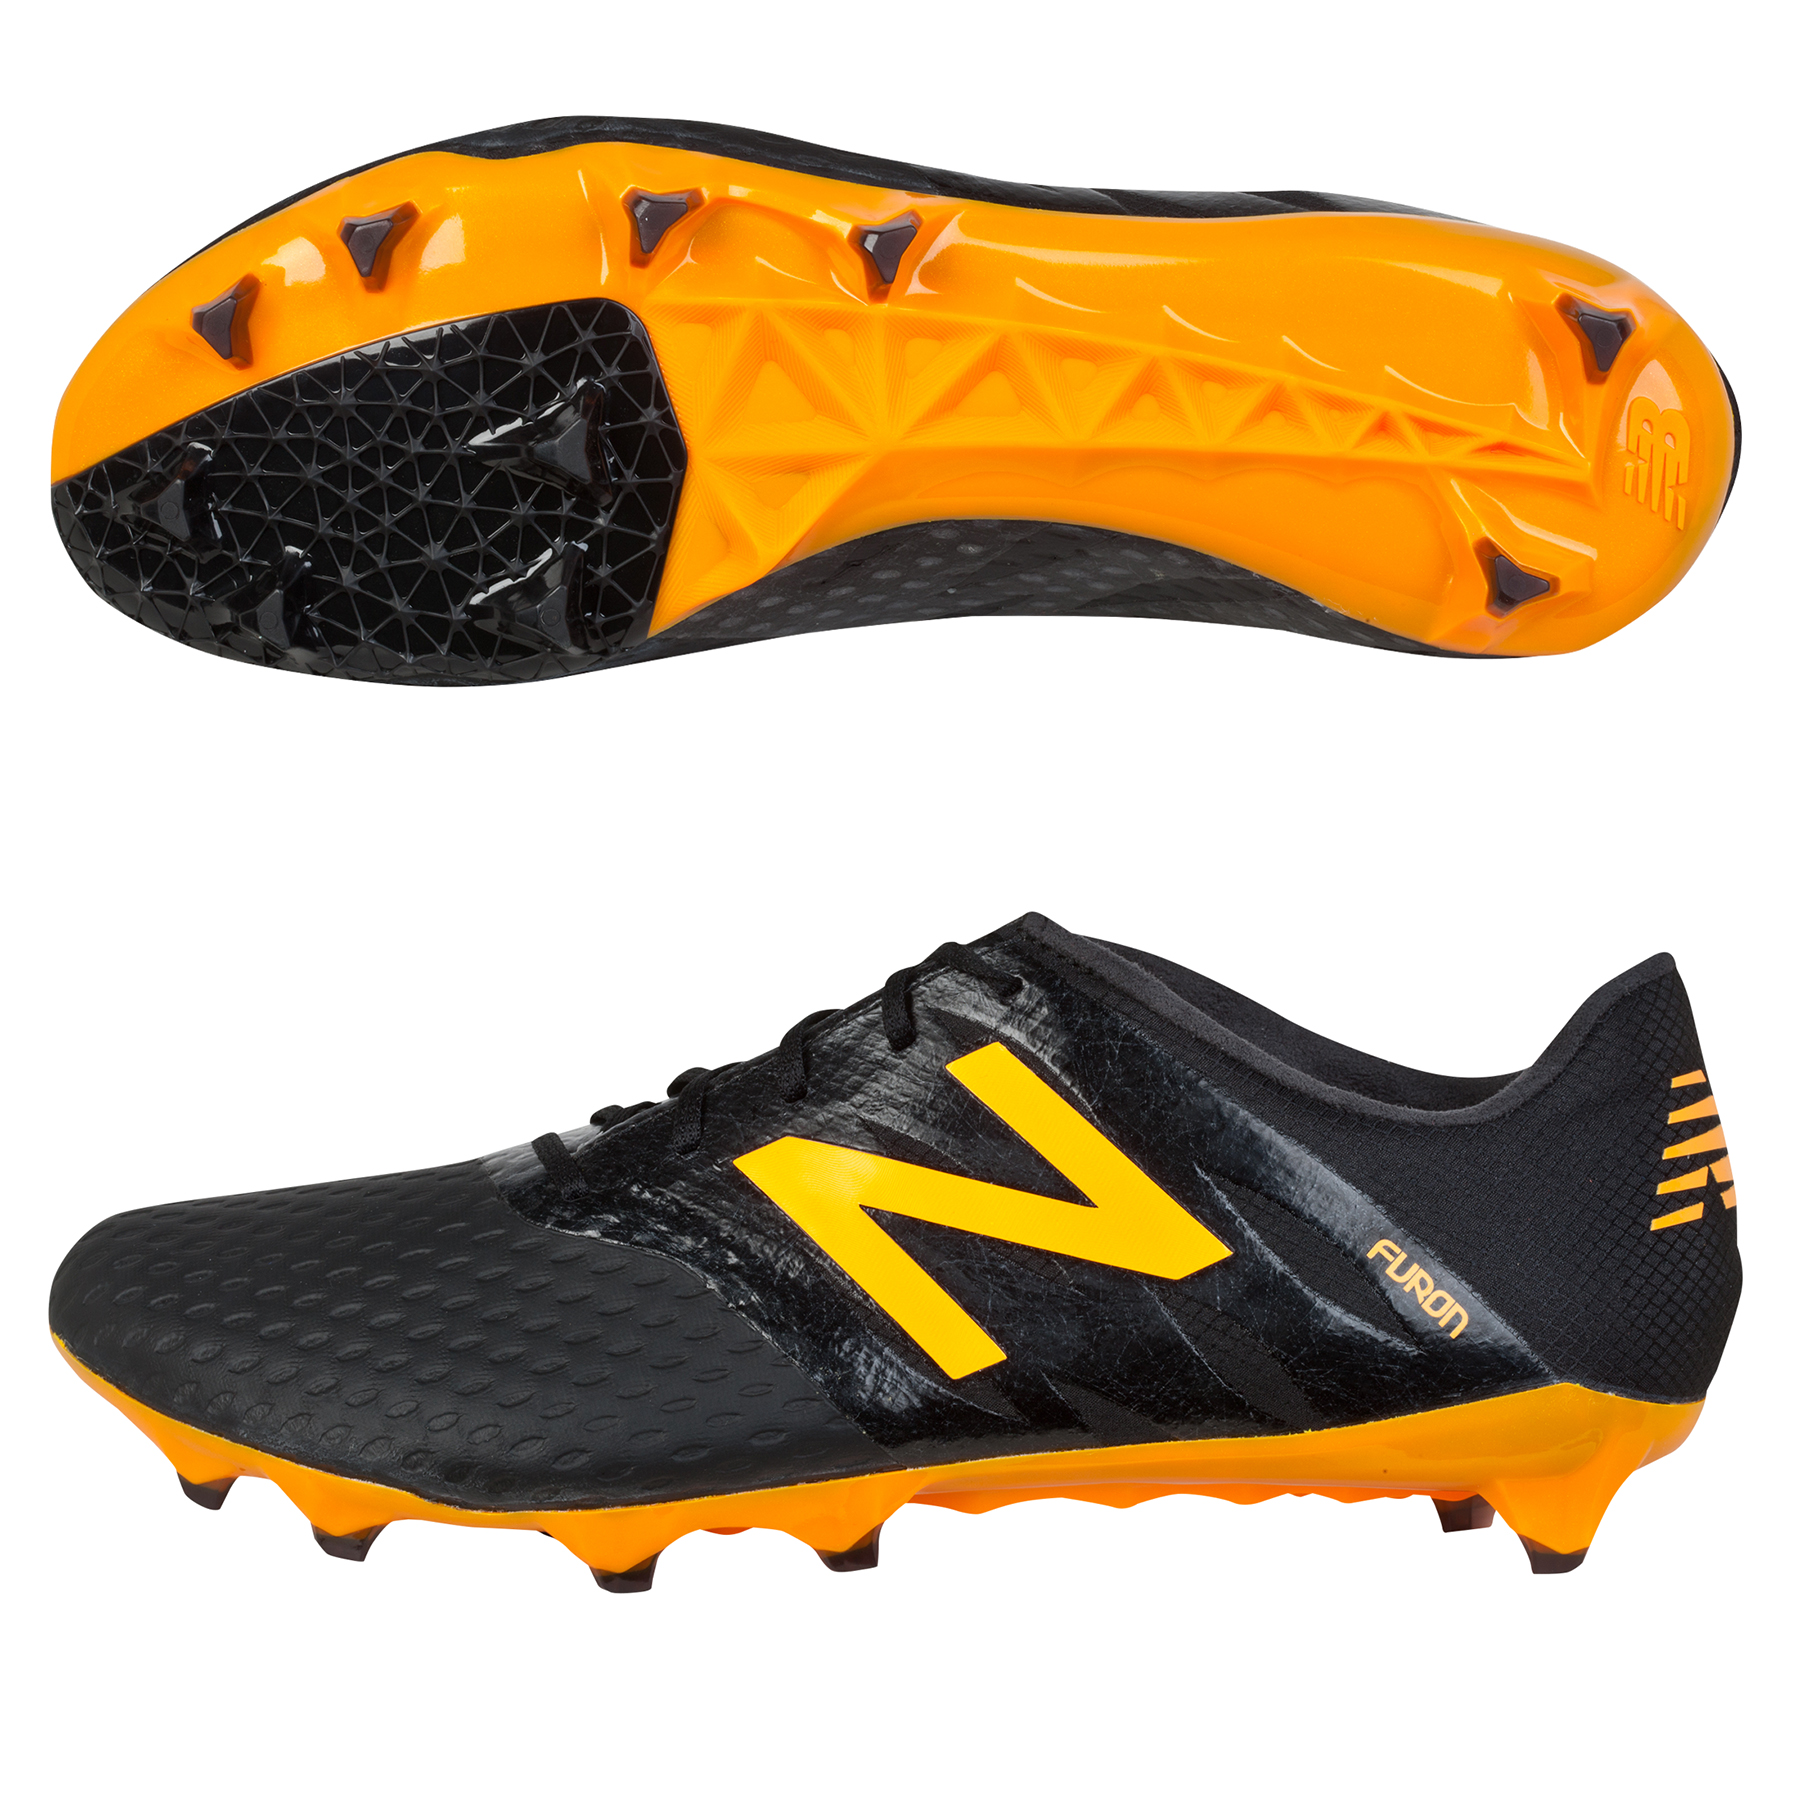 New Balance Furon Pro Firm Ground Football Boots Black